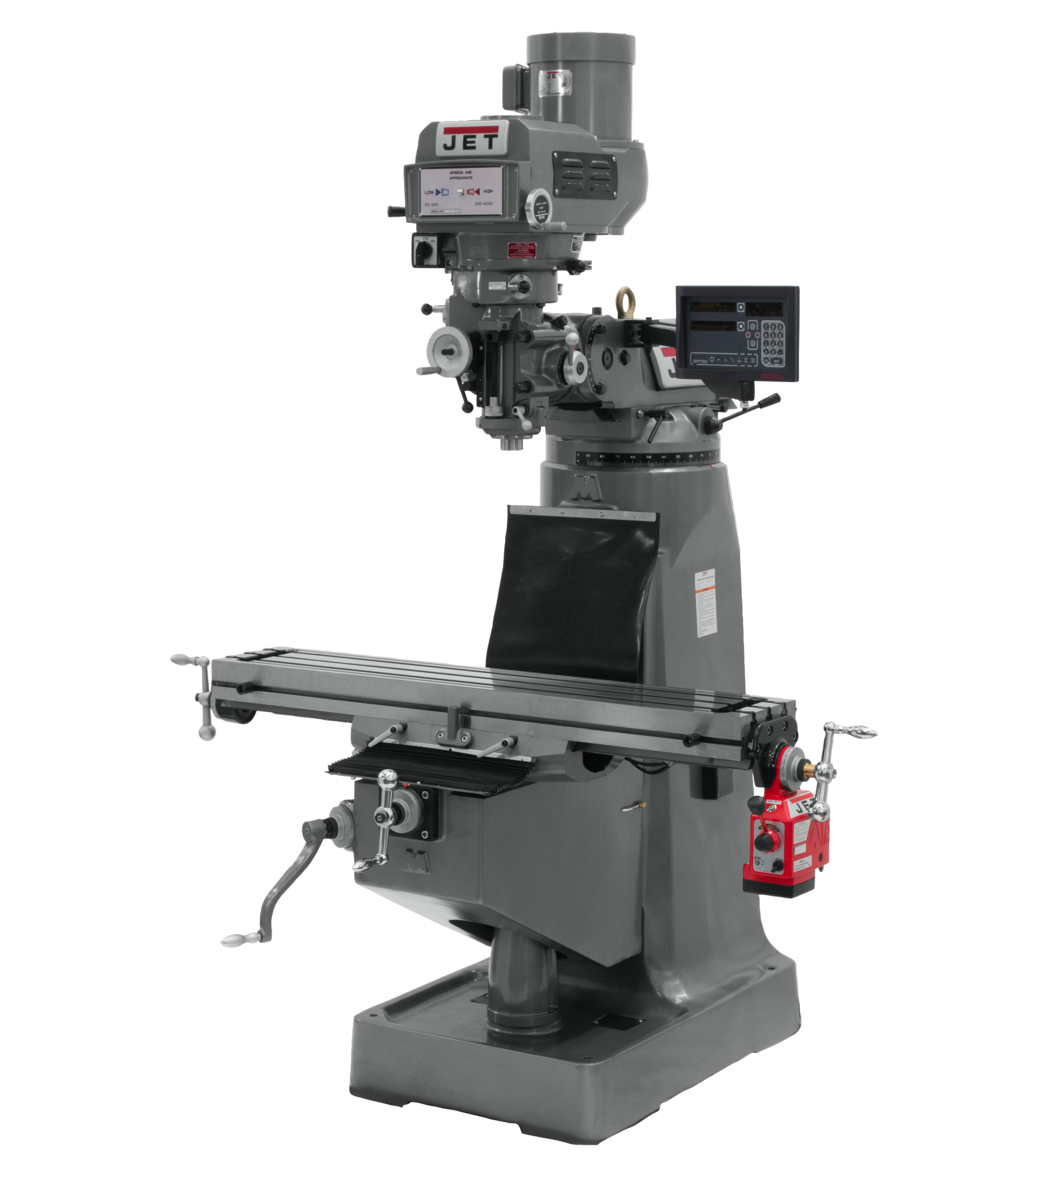 JTM-4VS-1 Mill With Newall DP700 DRO With X-Axis Powerfeed